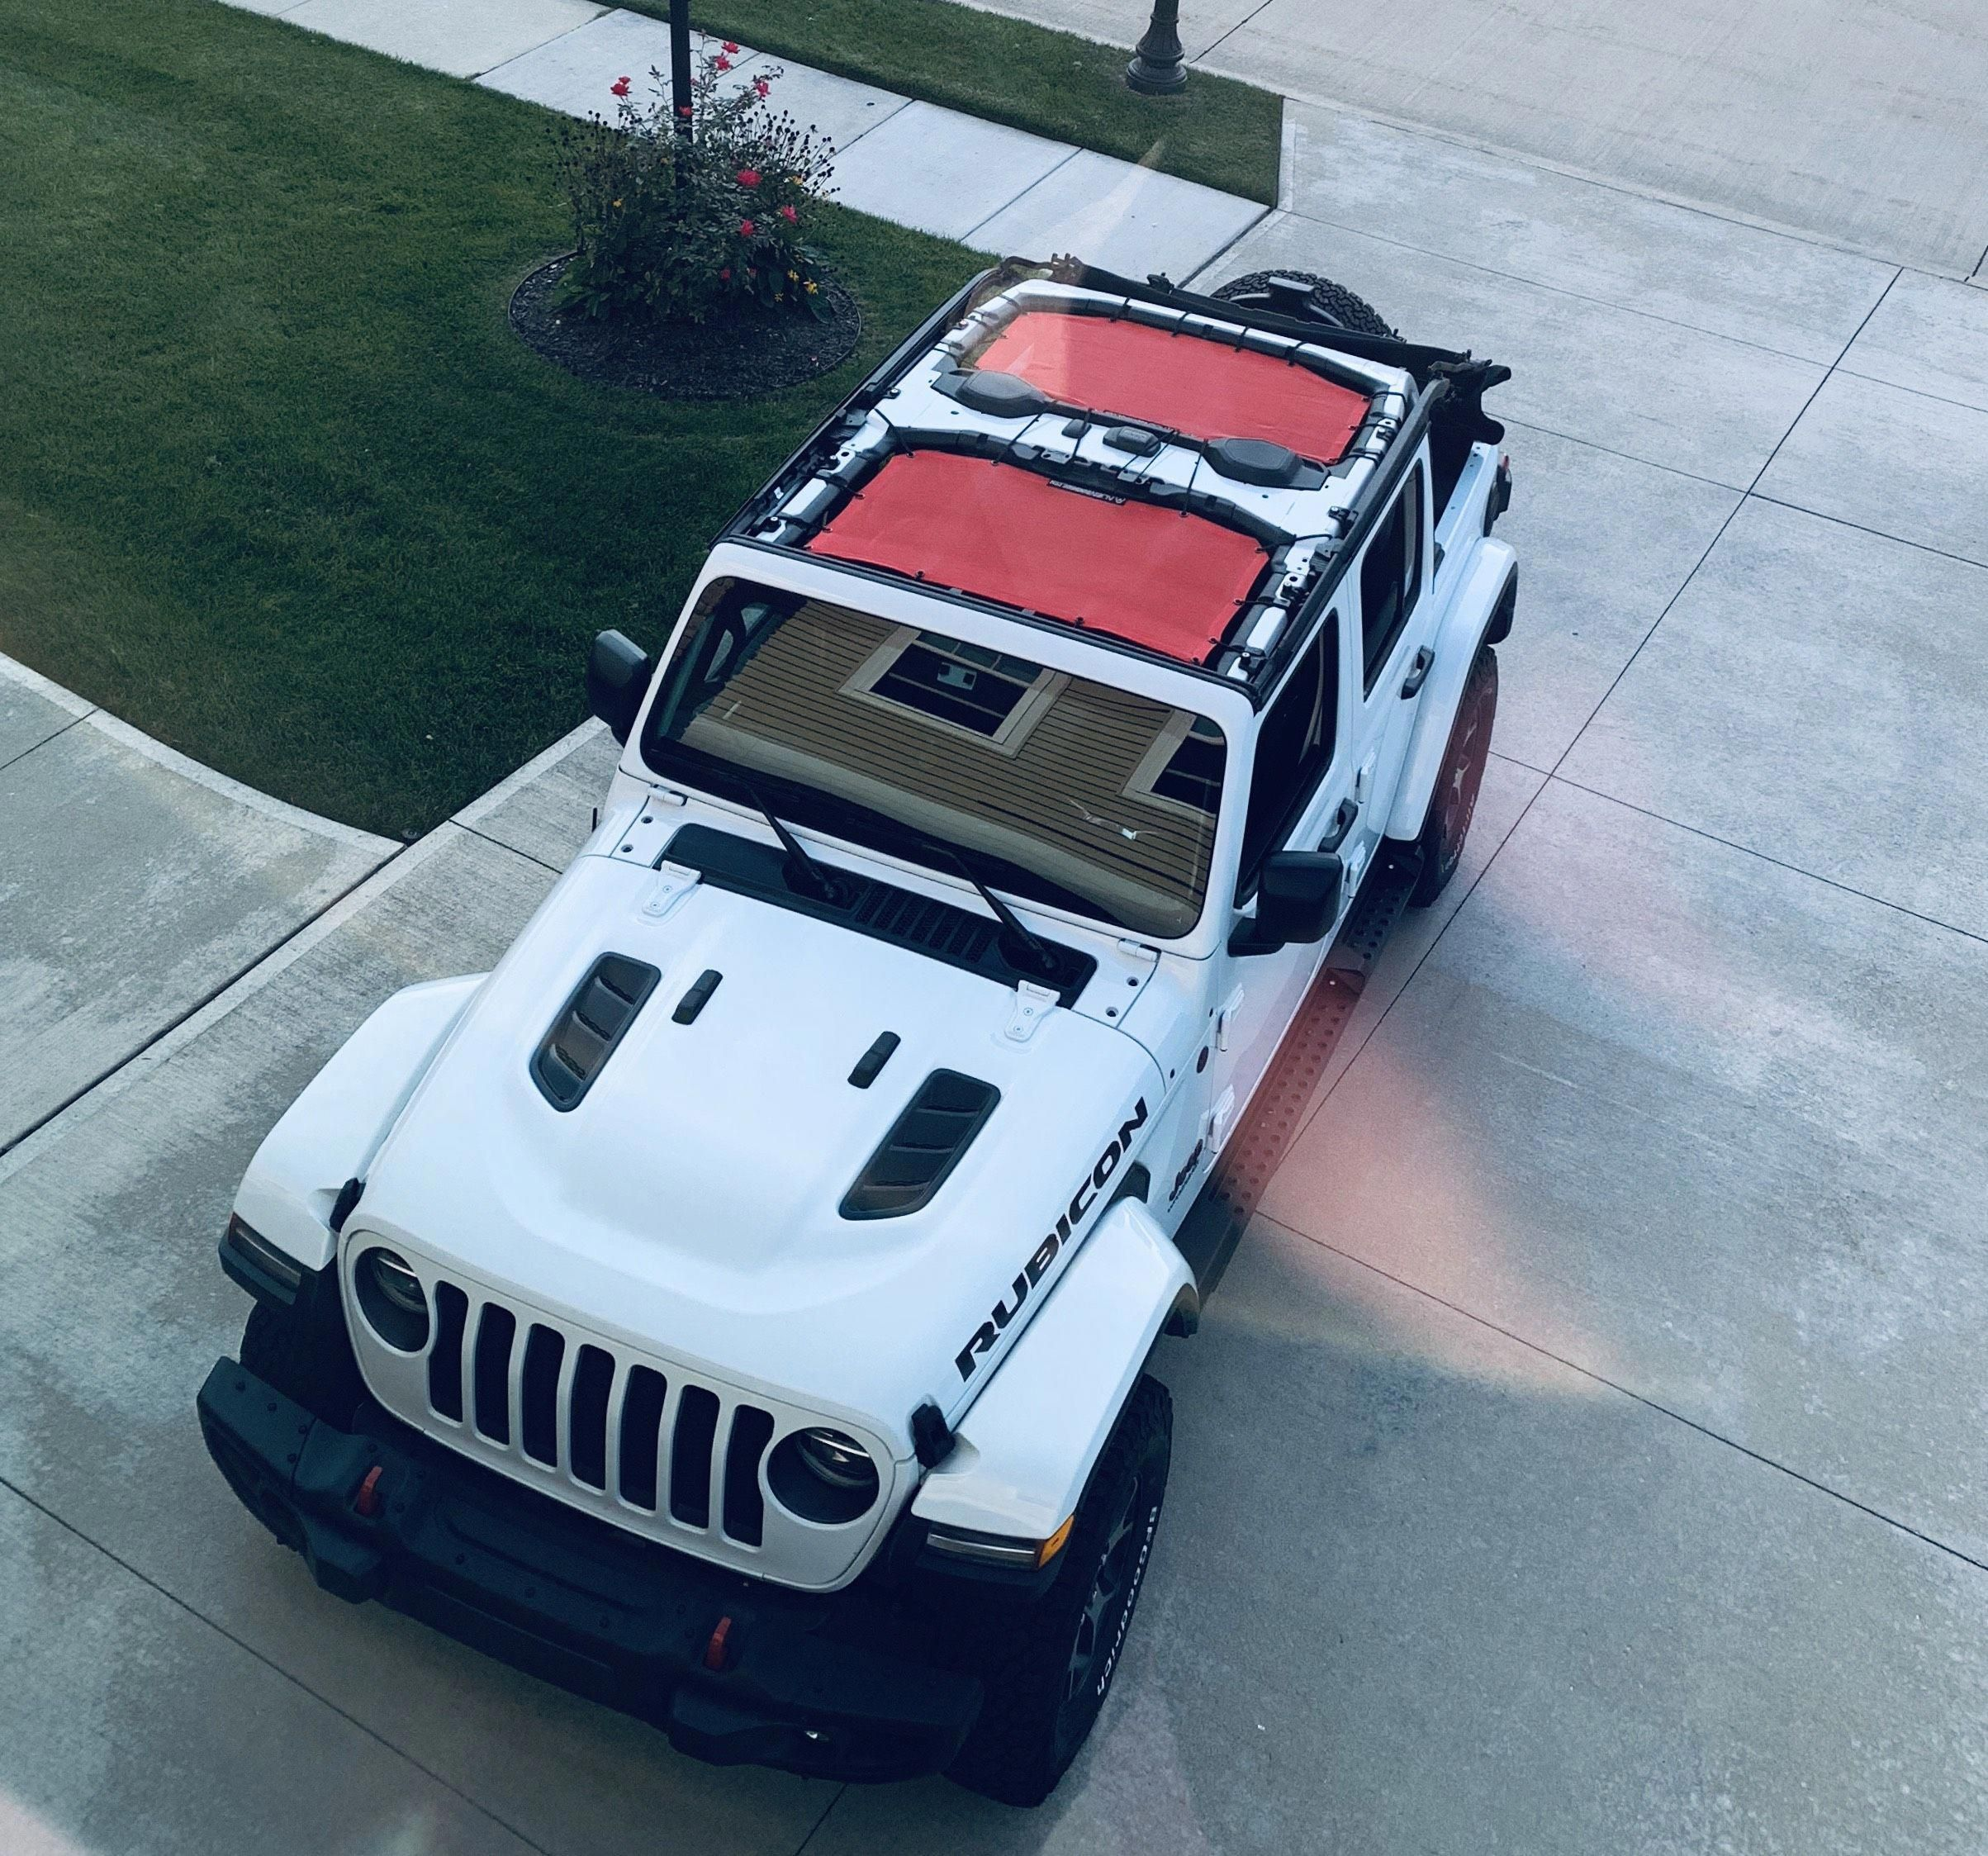 Jeep Wrangler Jlu Rubicon Bright White With Alien Sunshade Mesh Top In Cherry Red In 2020 Jeep Wrangler Accessories Jeep Wrangler White Jeep Wrangler